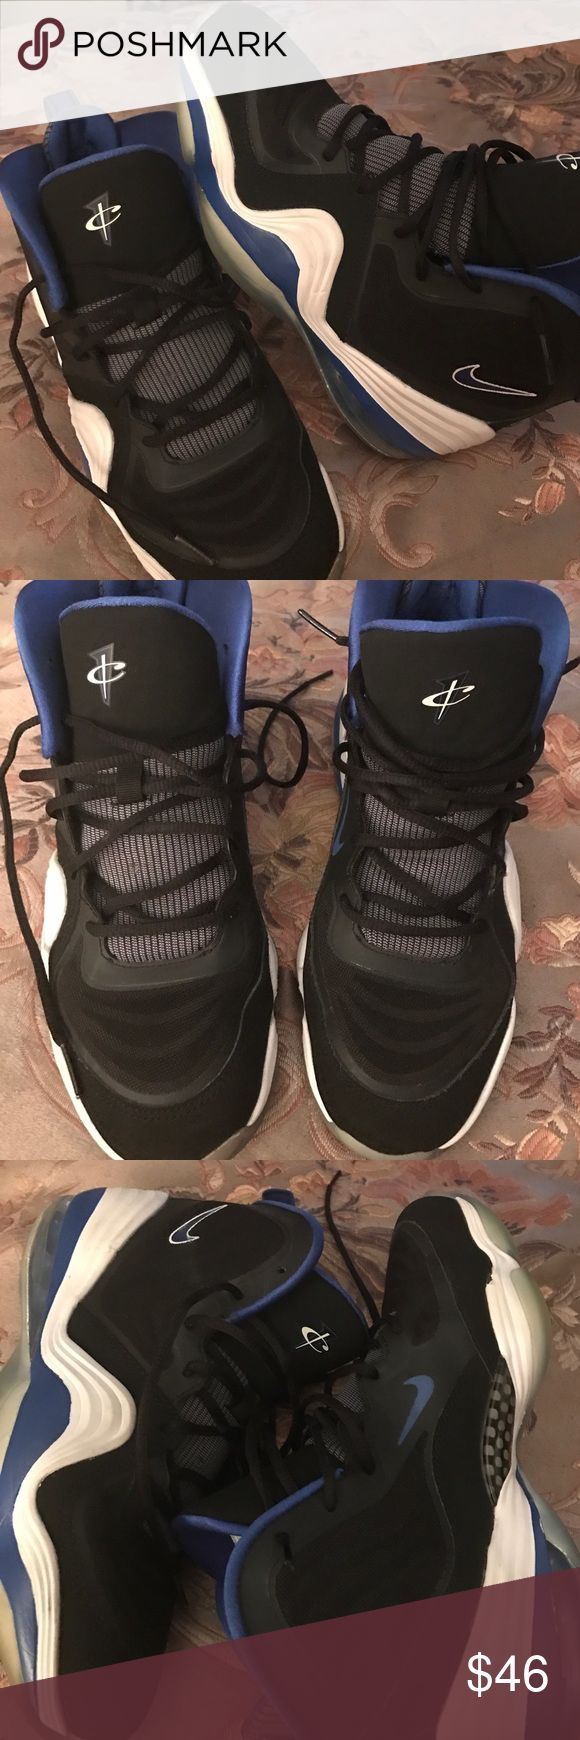 Nike penny Hardaway The shoes are in good condition there is a little damage on the sole (which could prob be glued down) as noted in last pic otherwise very good condition Clean and comes from smoke free home sz 6.5 boys/  8/8.5 women's Nike Shoes Sneakers